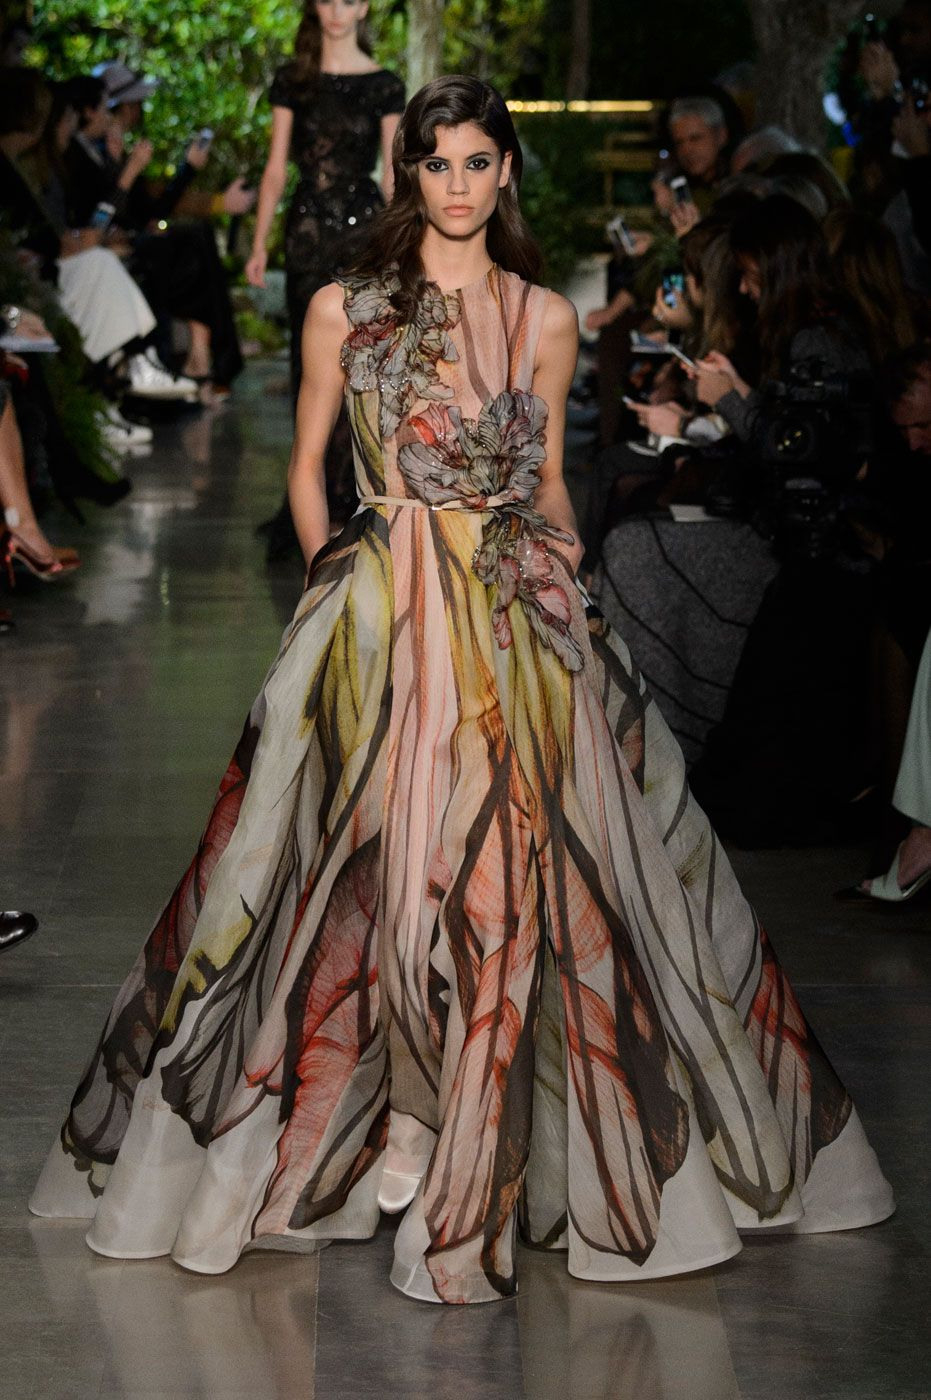 The Dreamiest Looks From The Paris Haute Couture Shows